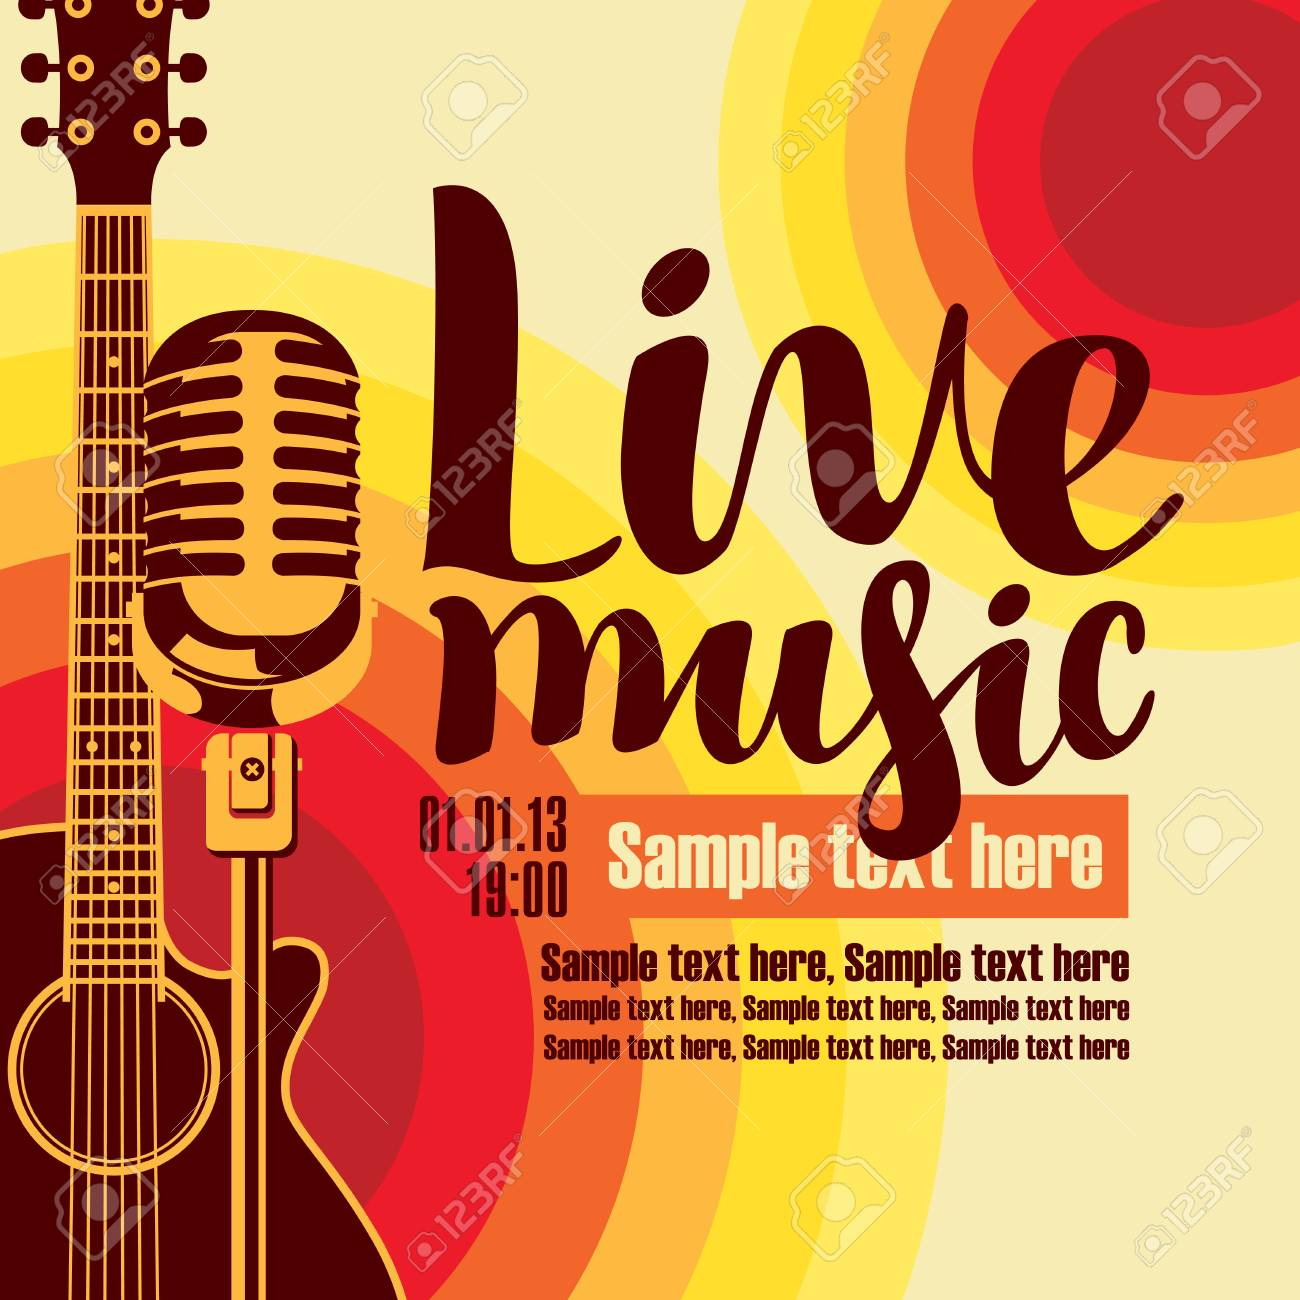 vector music poster for a concert live music with the image of a guitar and microphone on the colored background - 75349779